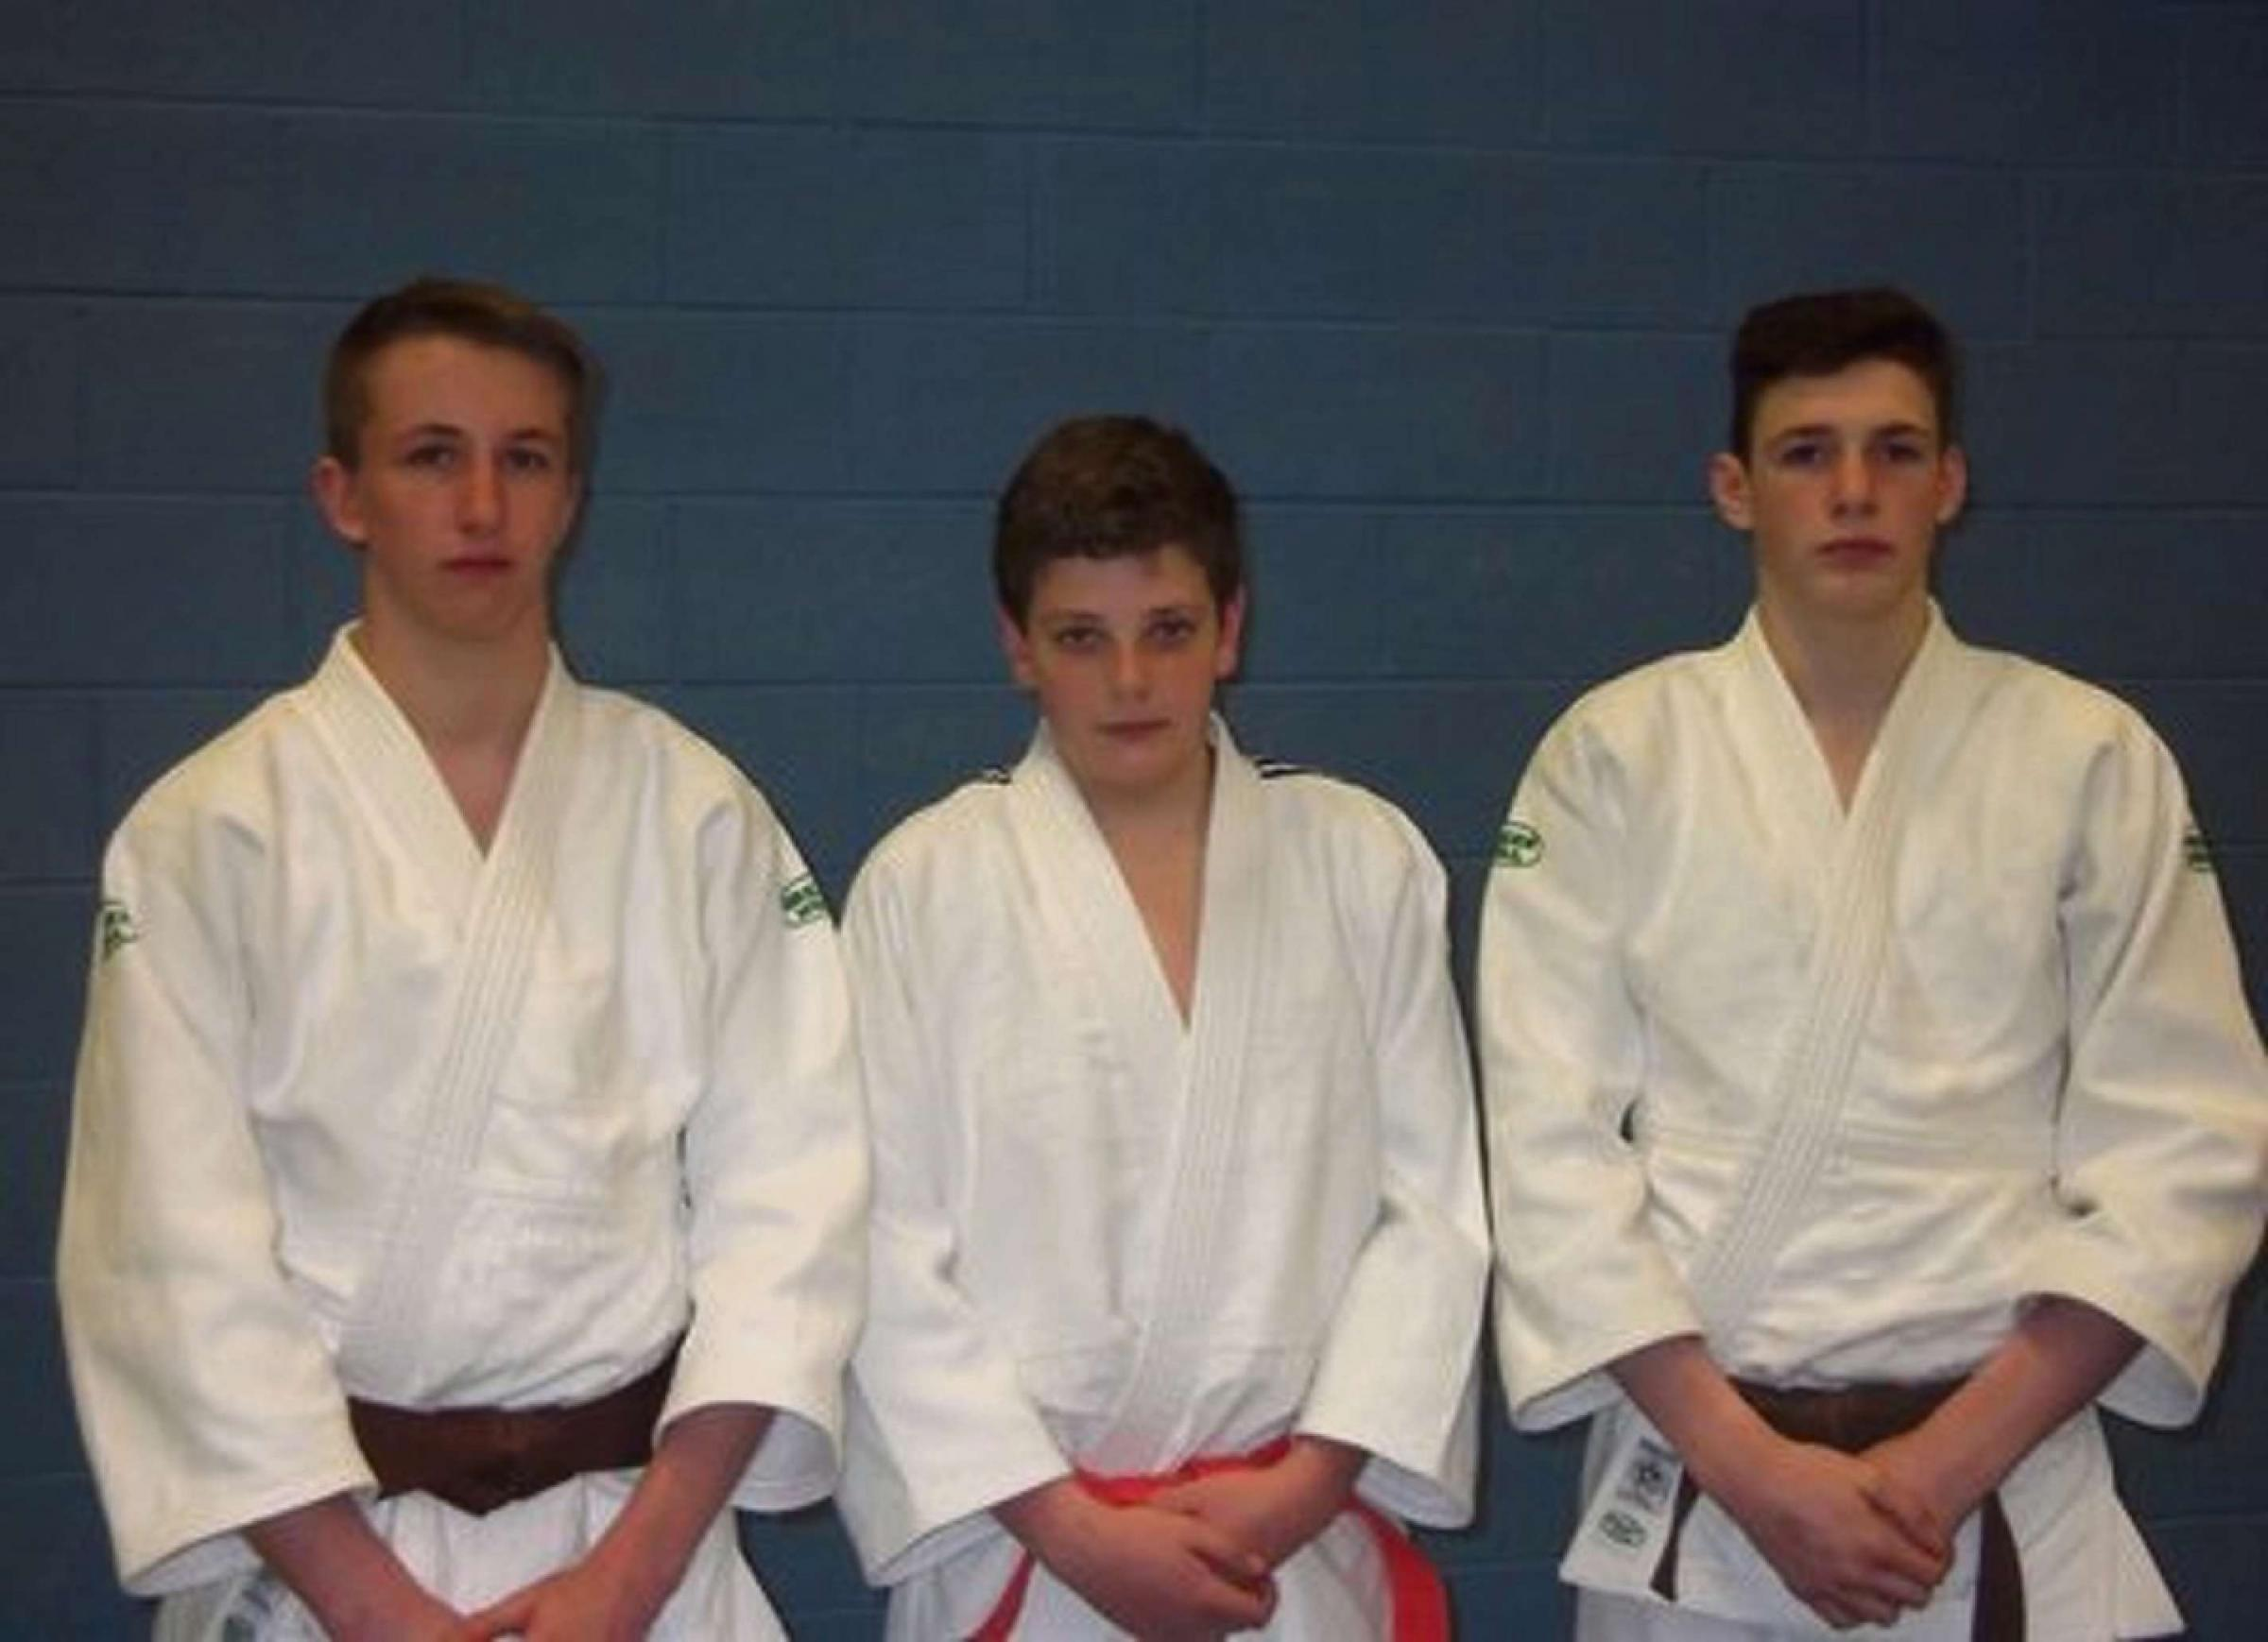 Stroud Judo Club members Connor Elliott, Danny Fox and Harry Lovell-Hewitt